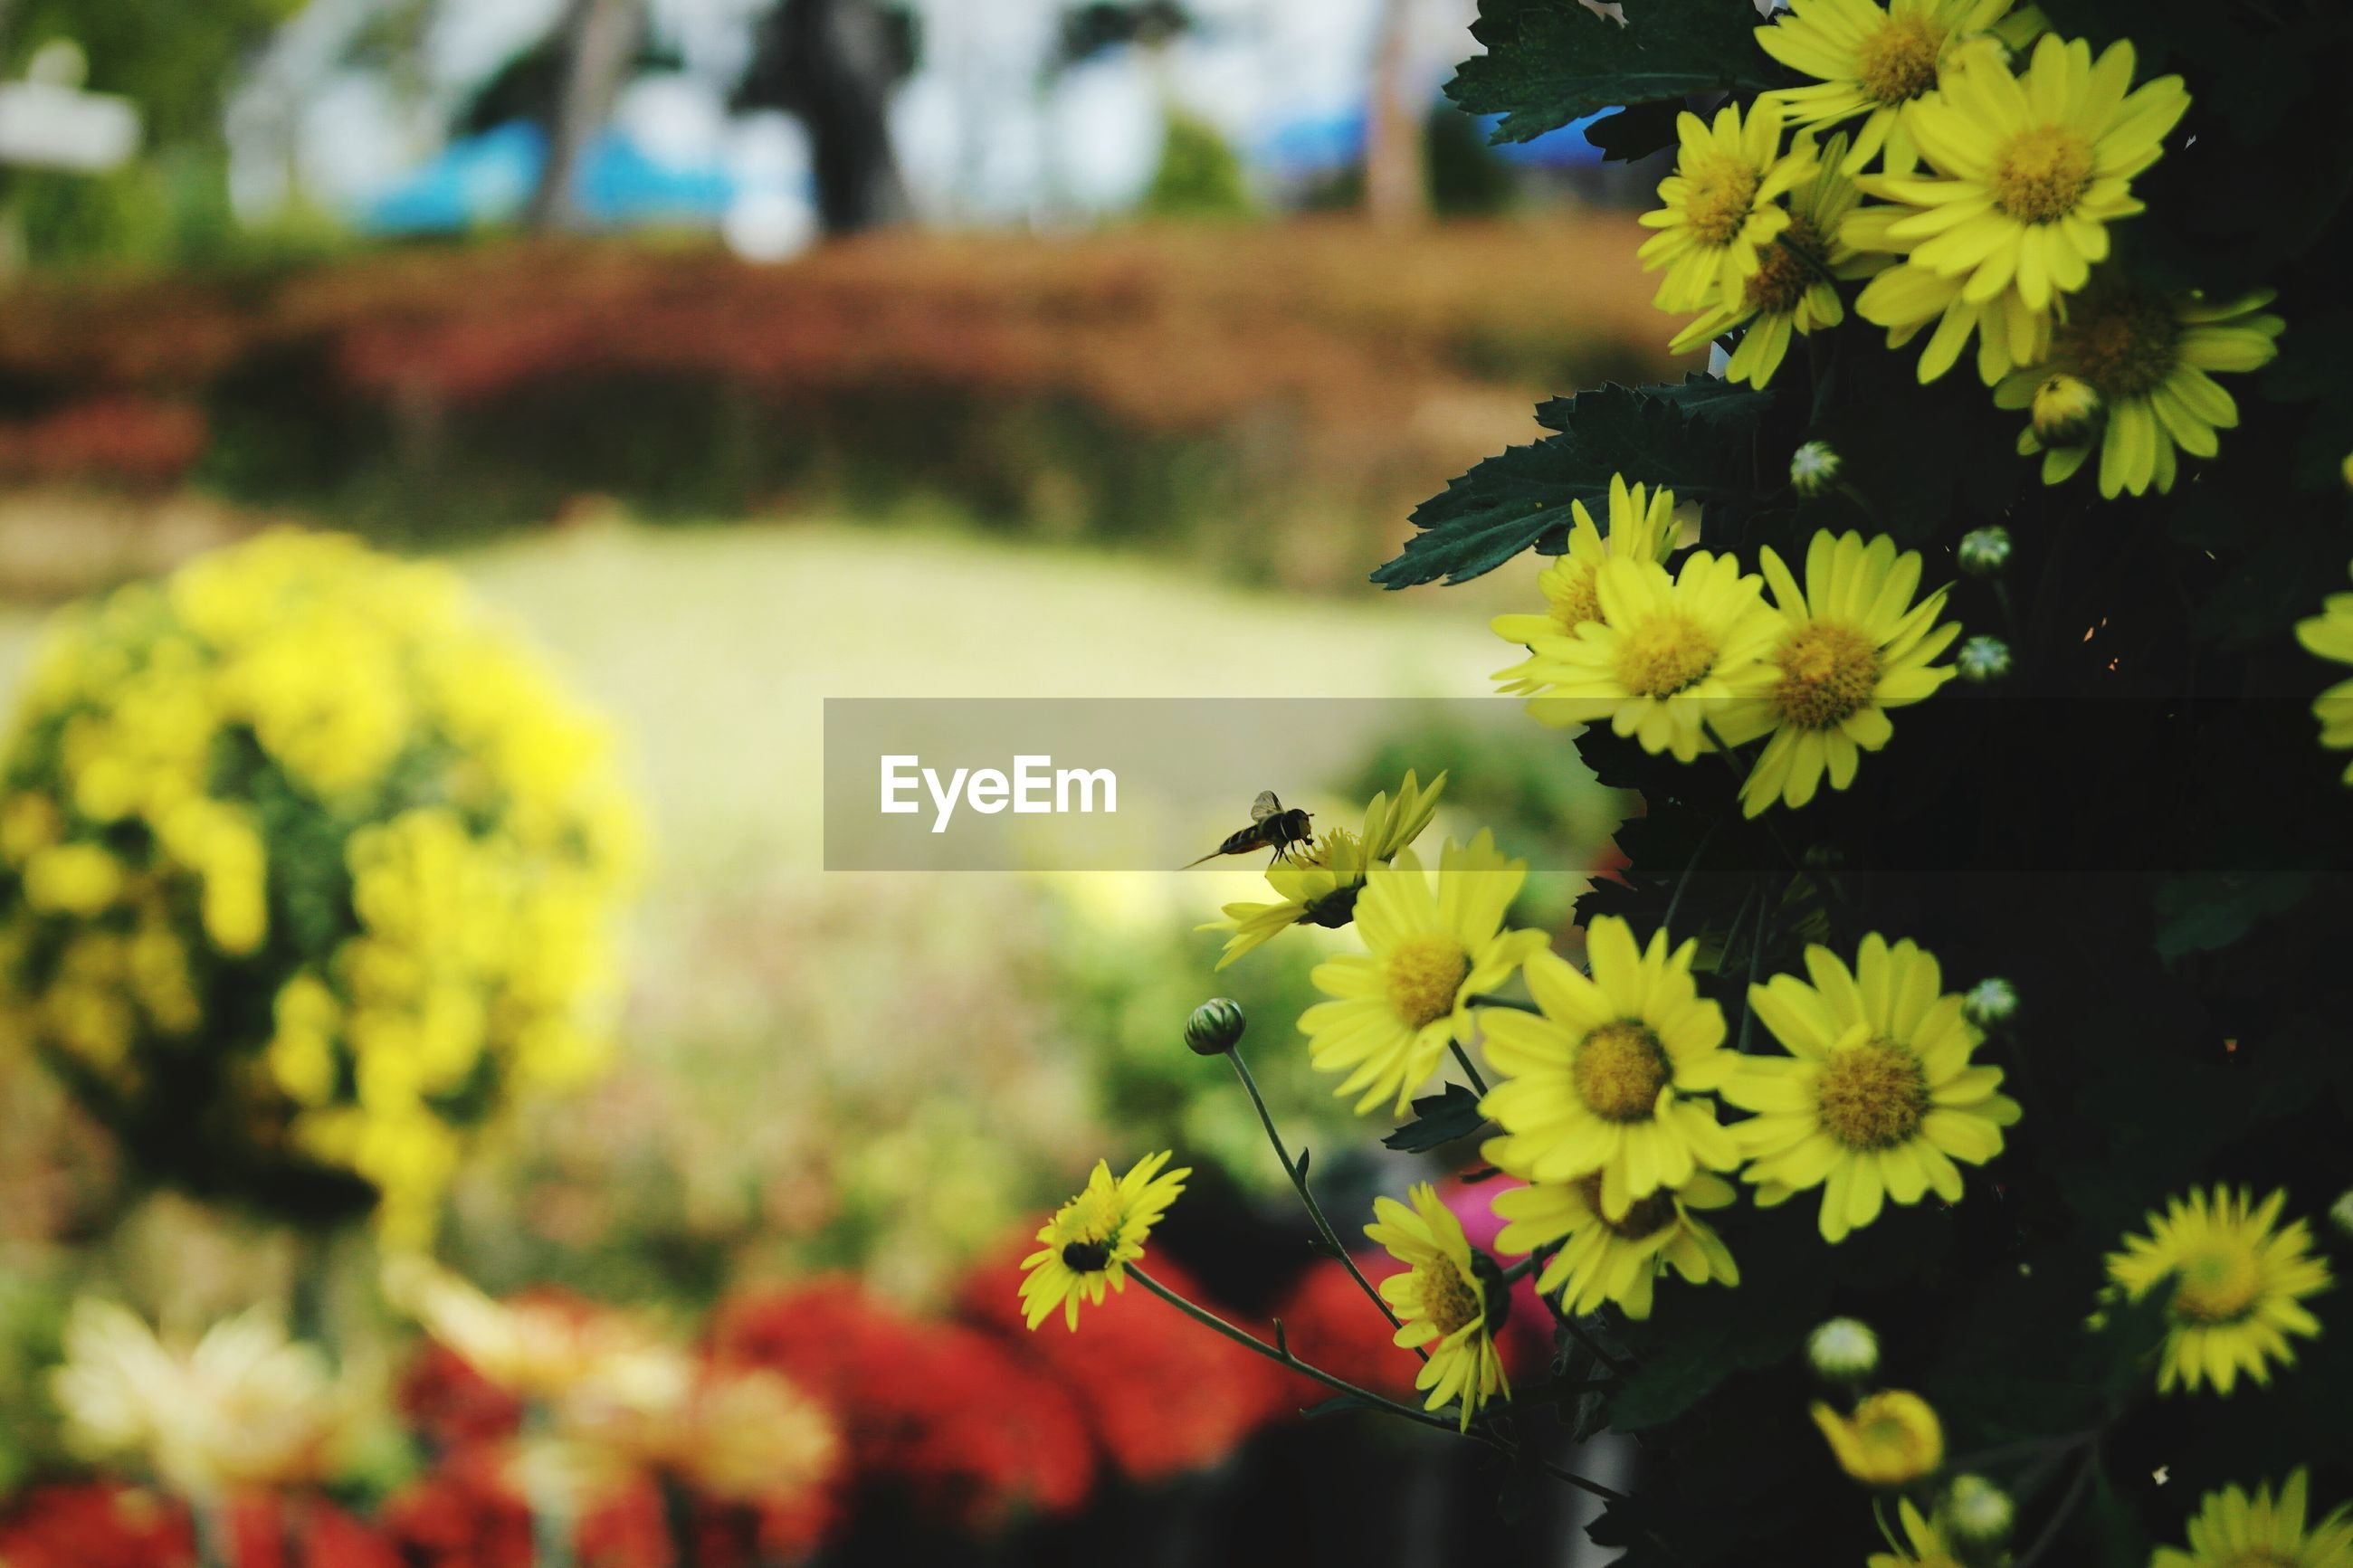 flower, yellow, petal, fragility, freshness, focus on foreground, growth, beauty in nature, flower head, close-up, plant, blooming, nature, selective focus, in bloom, stem, outdoors, day, park - man made space, no people